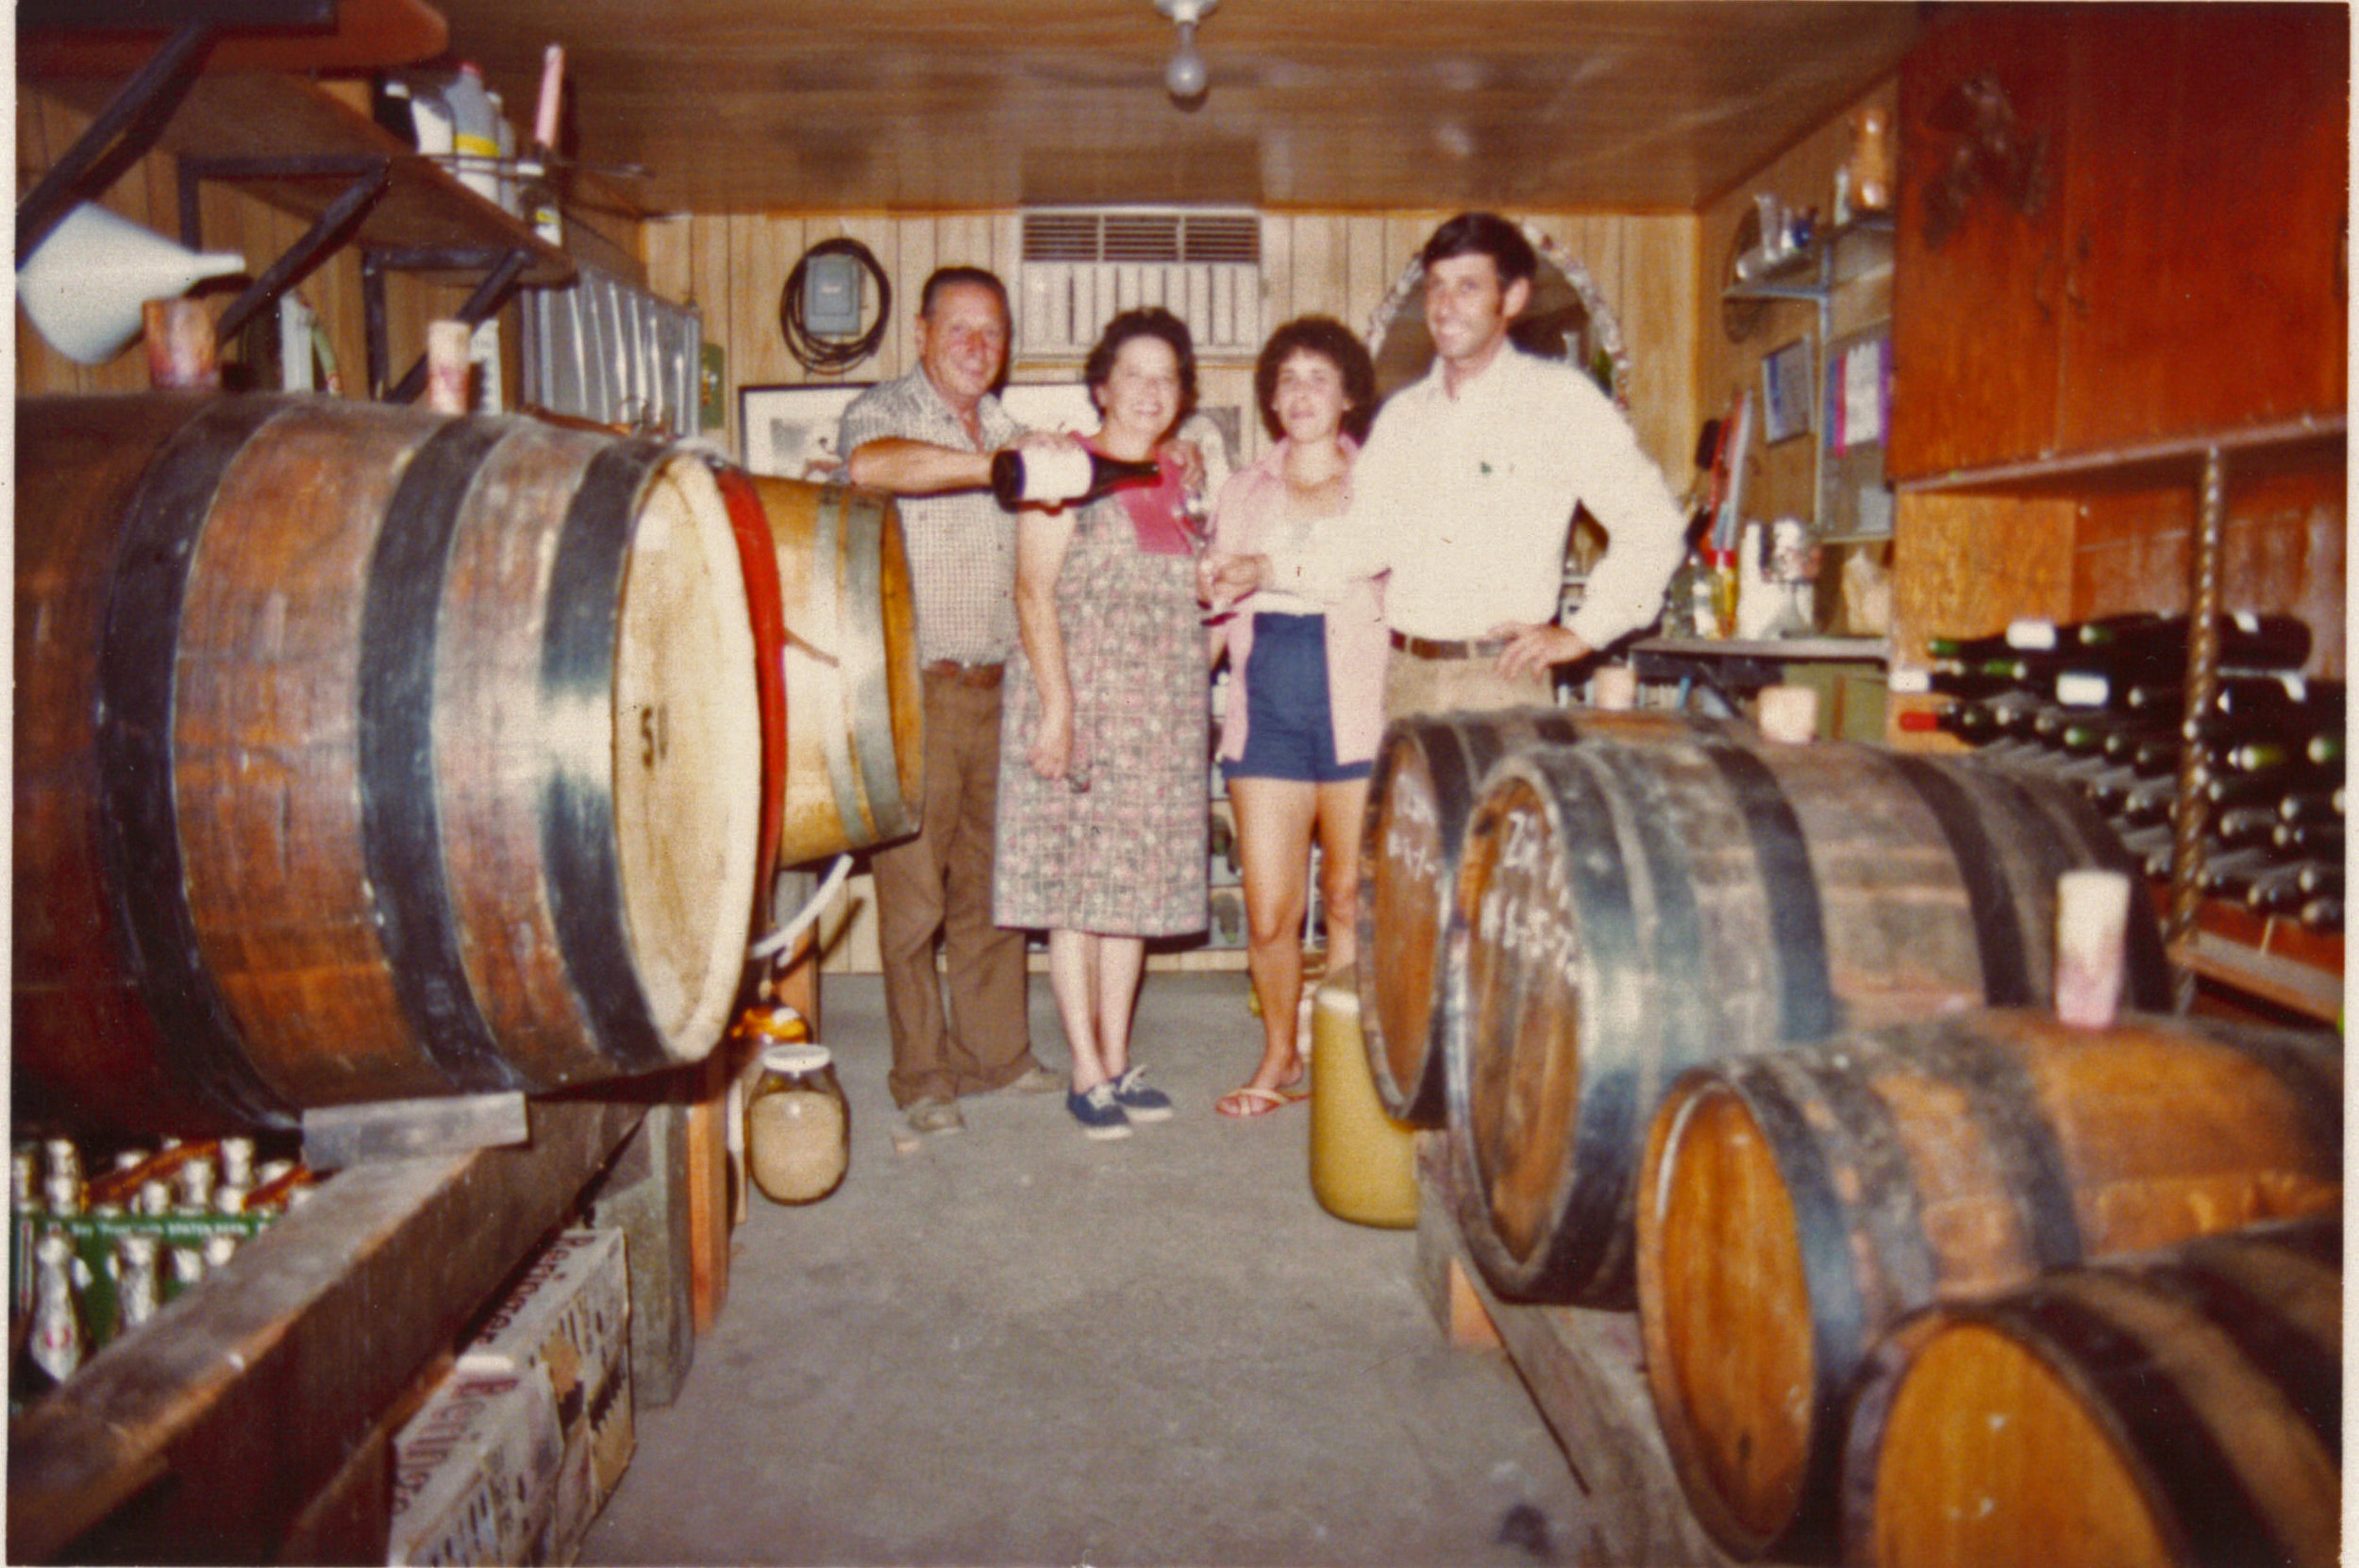 Eugene, Anna, Frances, and Emil Tedeschi in their family cellar.